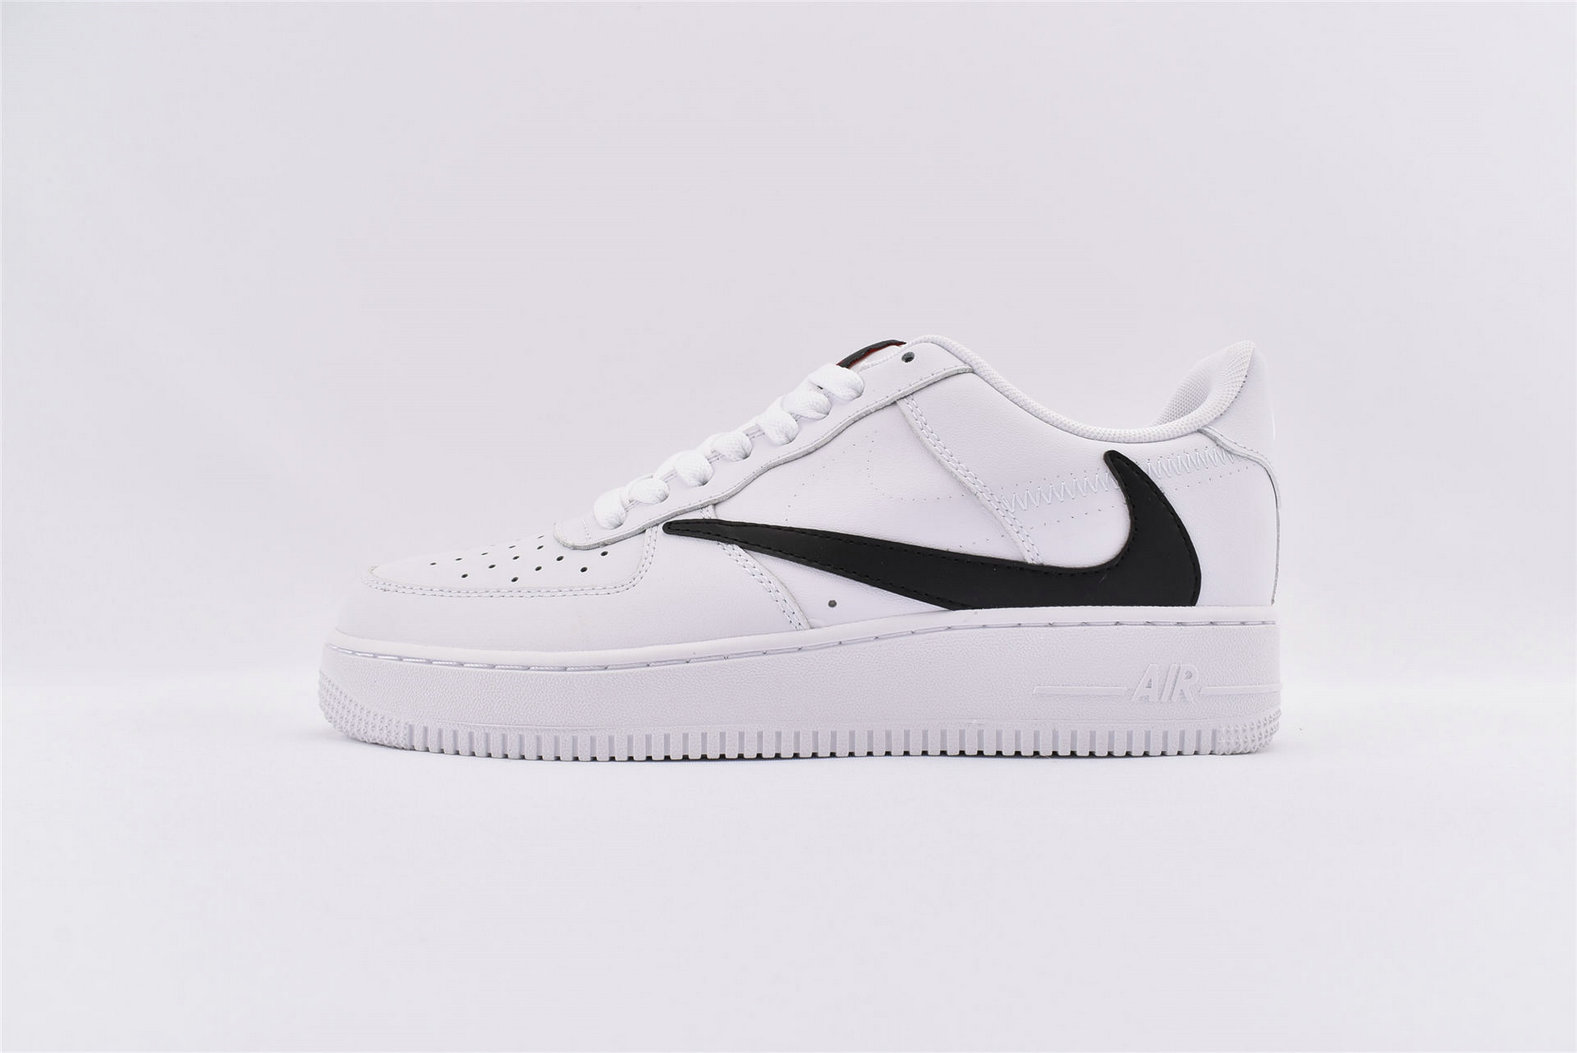 Where To Buy Wholesale Cheap Nike Air Force 1 07 V8 White Red AQ8896-100 - www.wholesaleflyknit.com